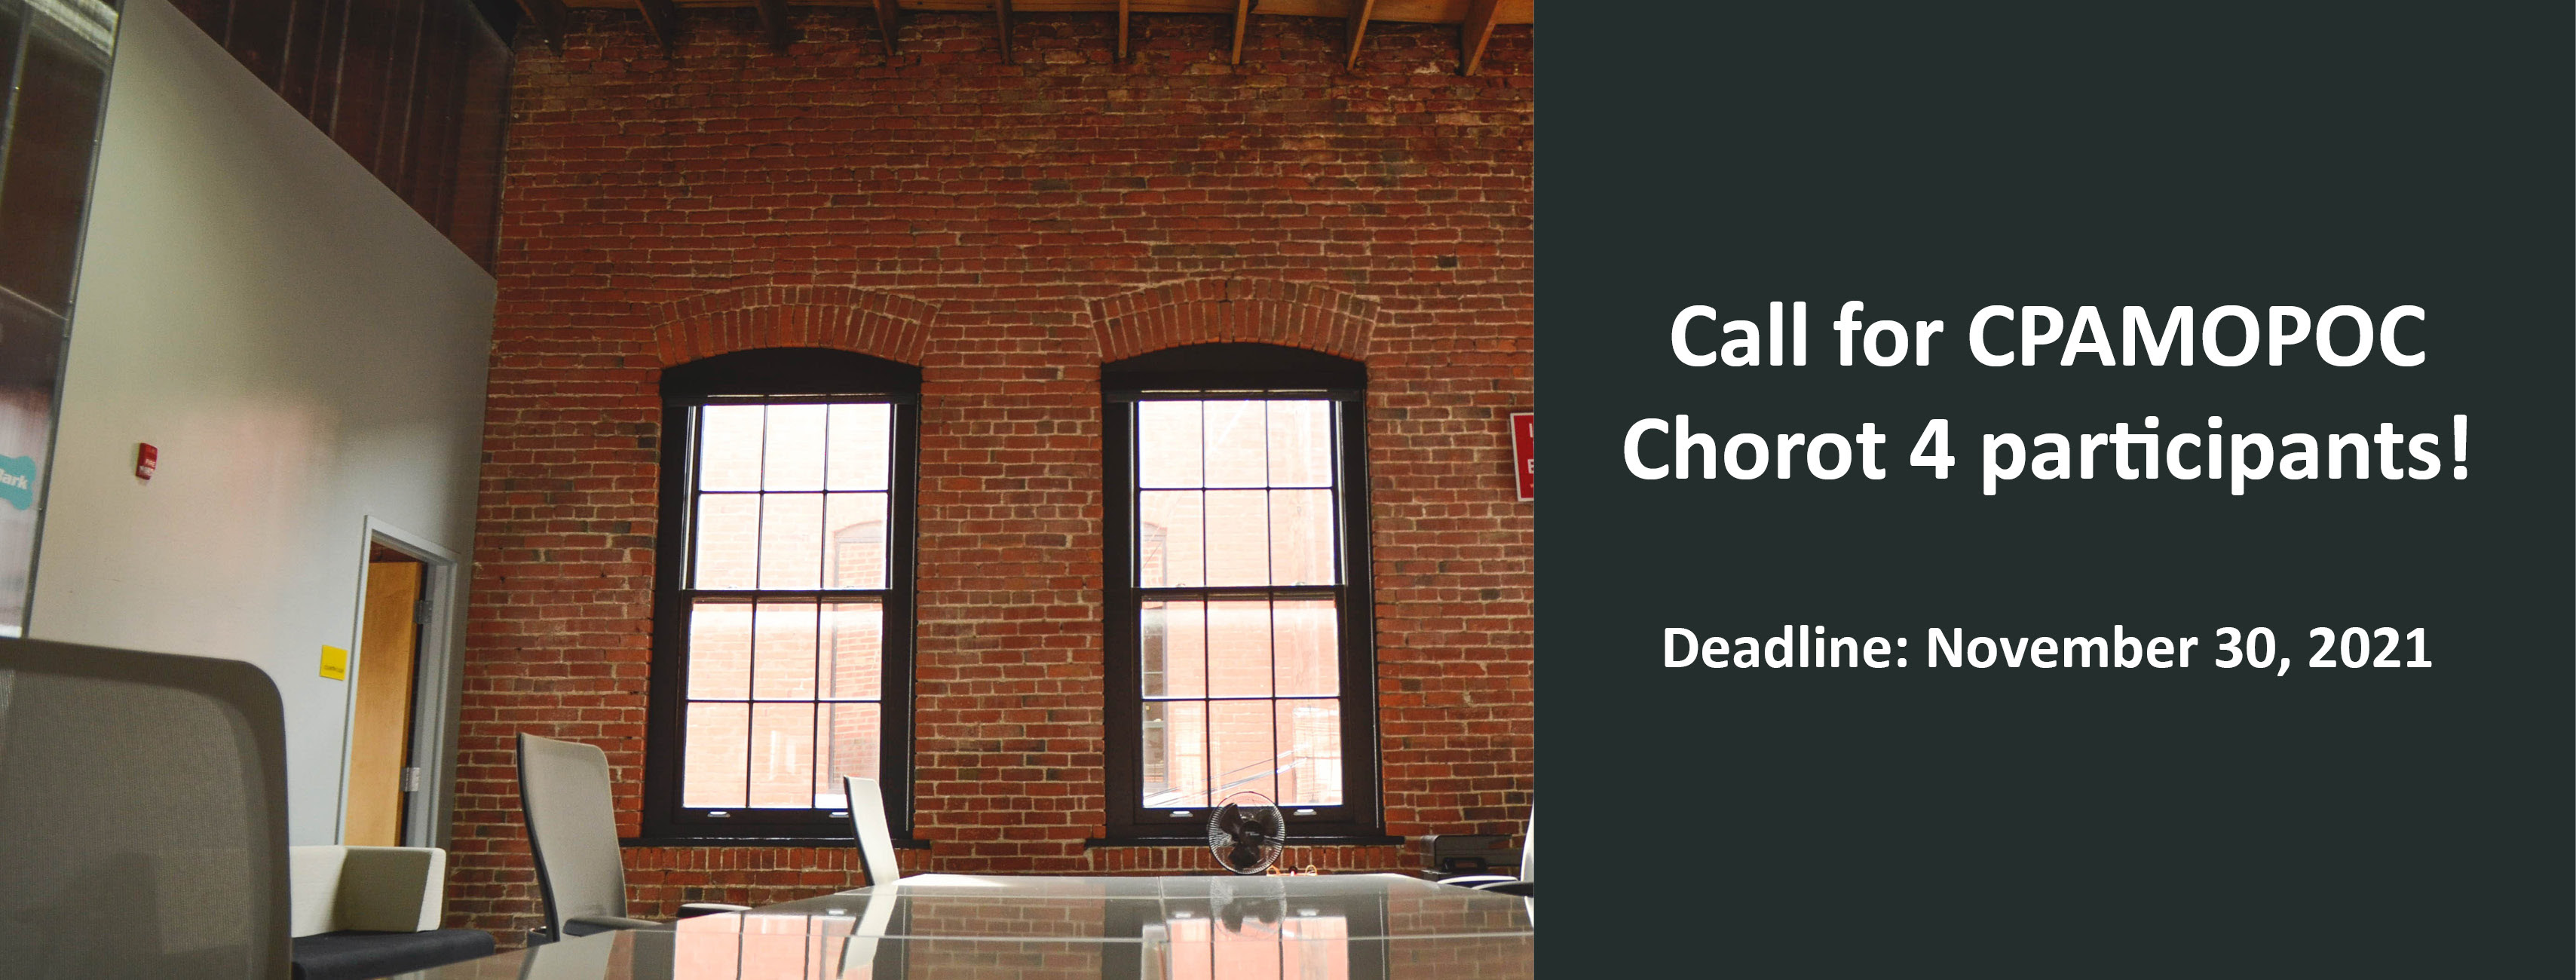 Office with brick walls and a table with chairs, on the right text, says Call for CPAMOPOC Chorot 4 participants!  Deadline: November 30, 2021